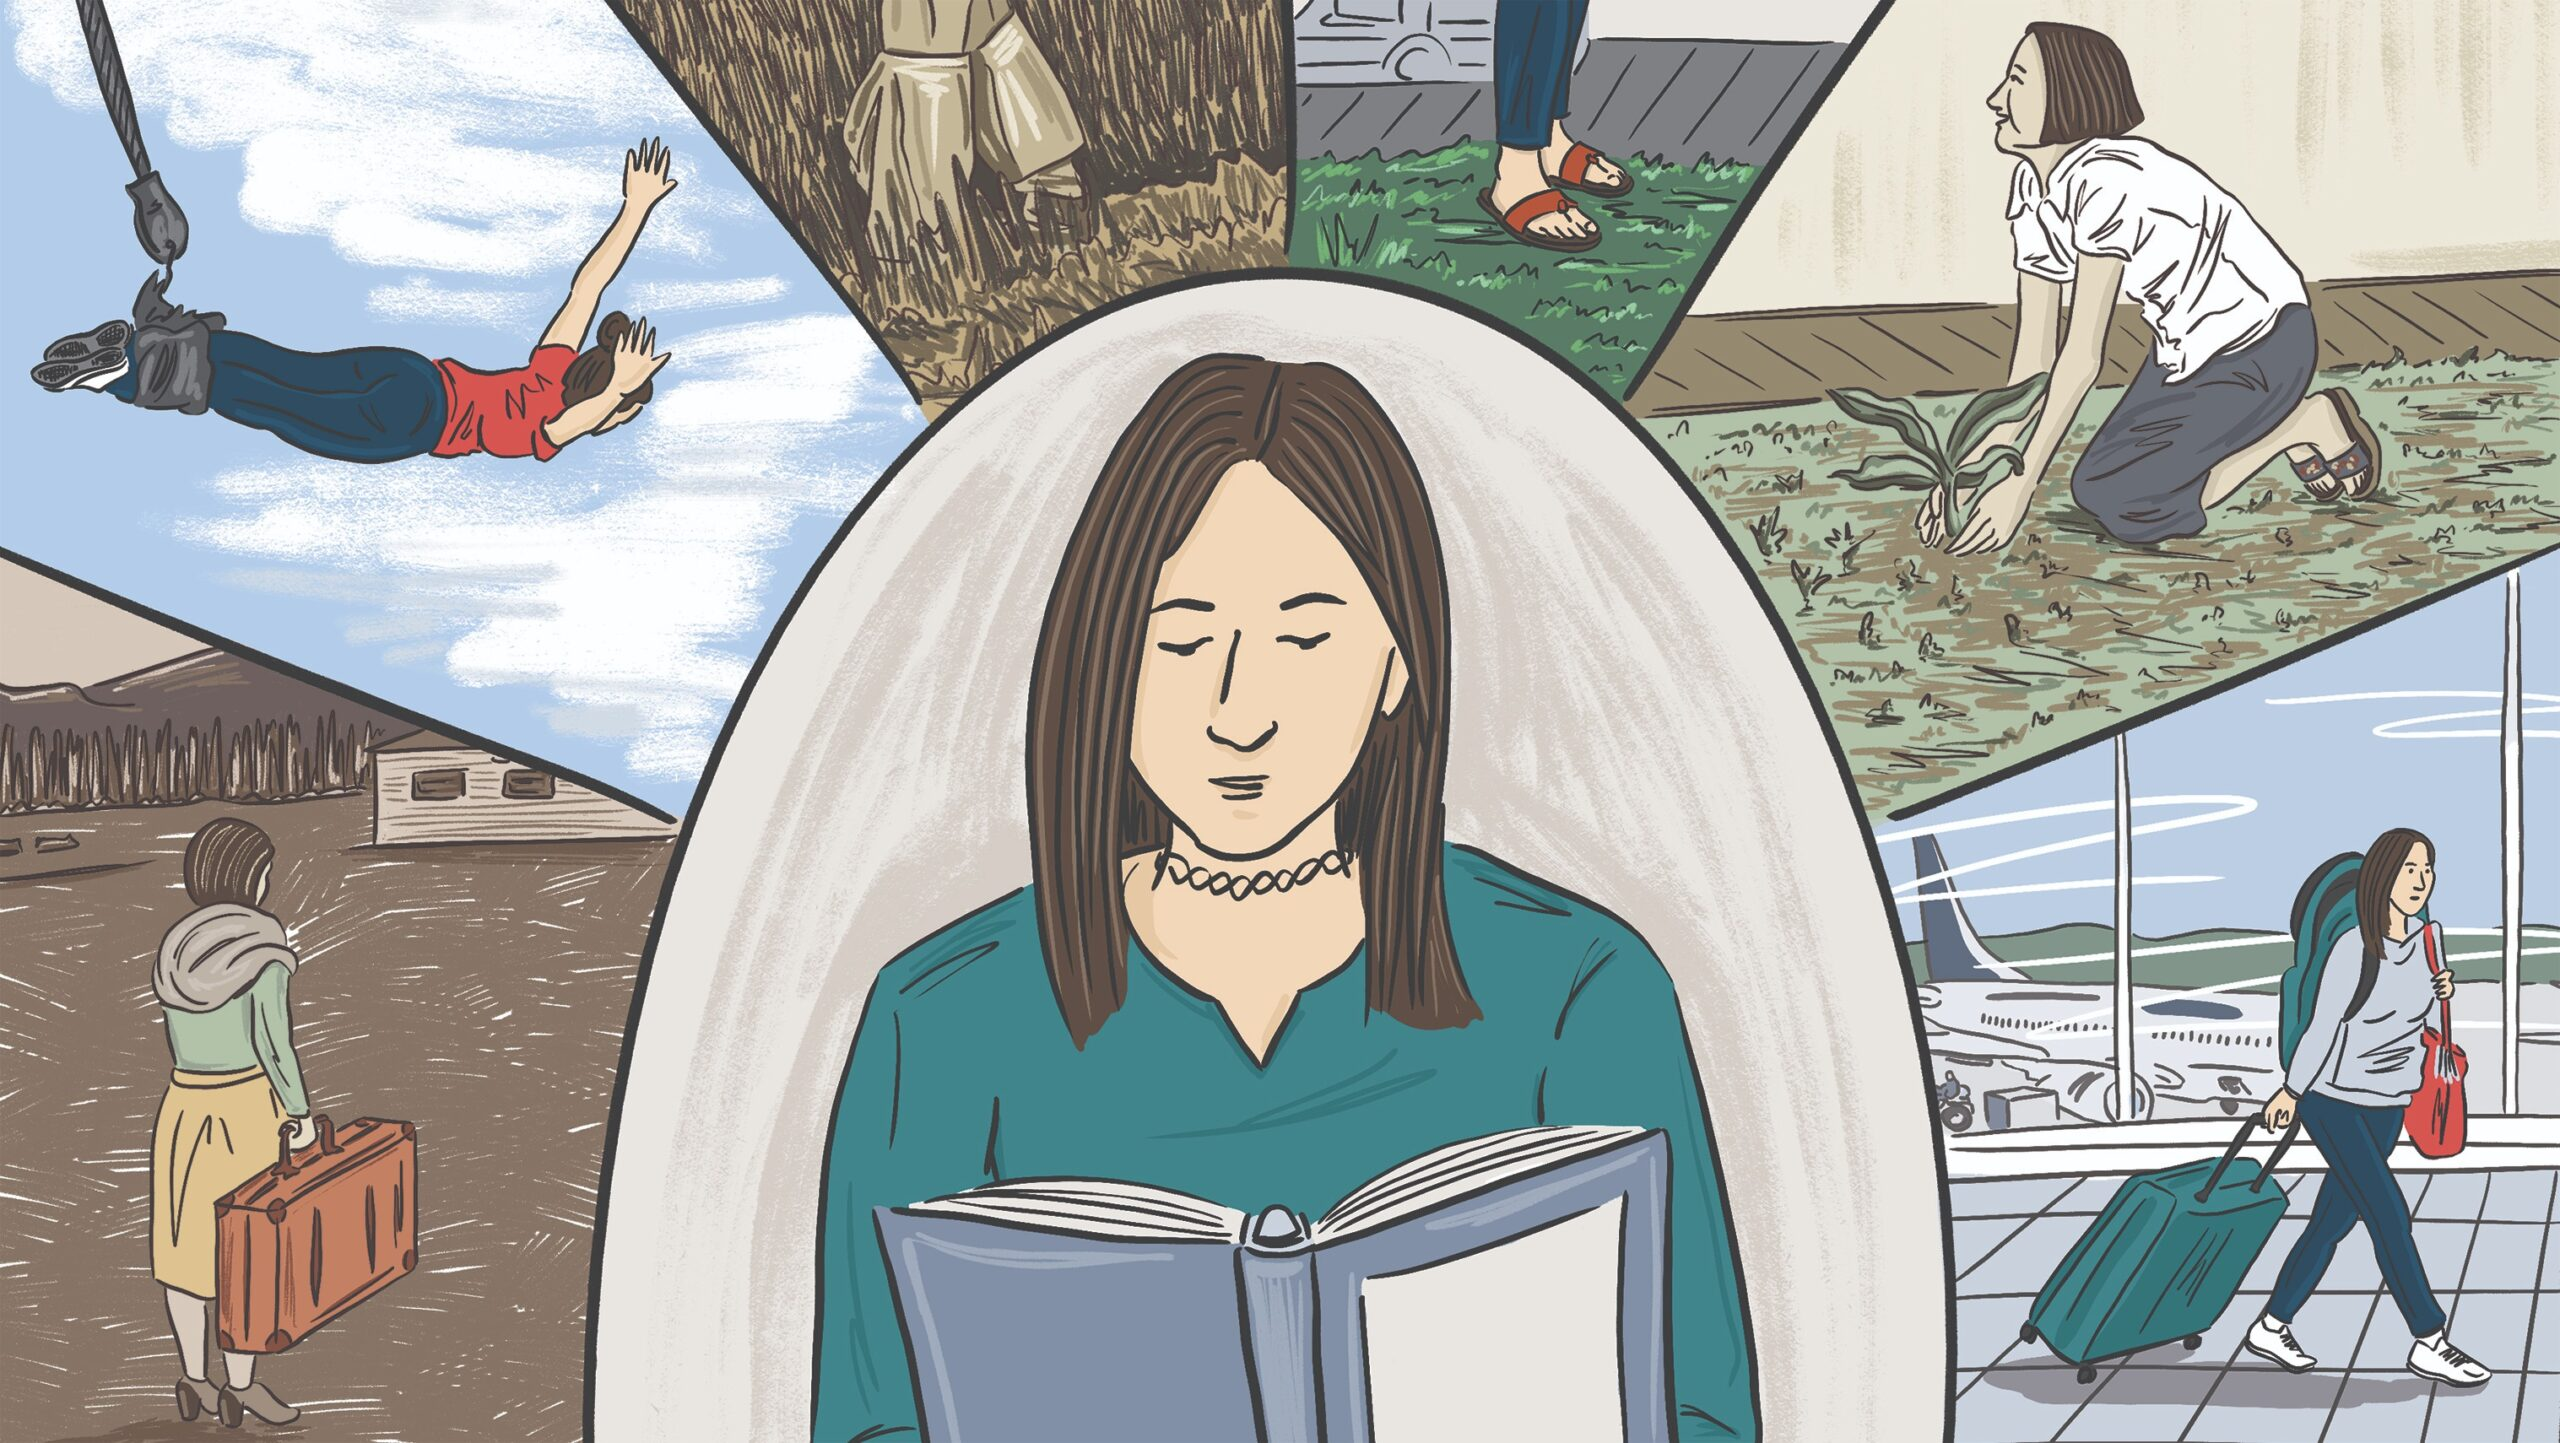 Illustration of a woman reading a book and surrounded by snippets of the historical events in its pages.